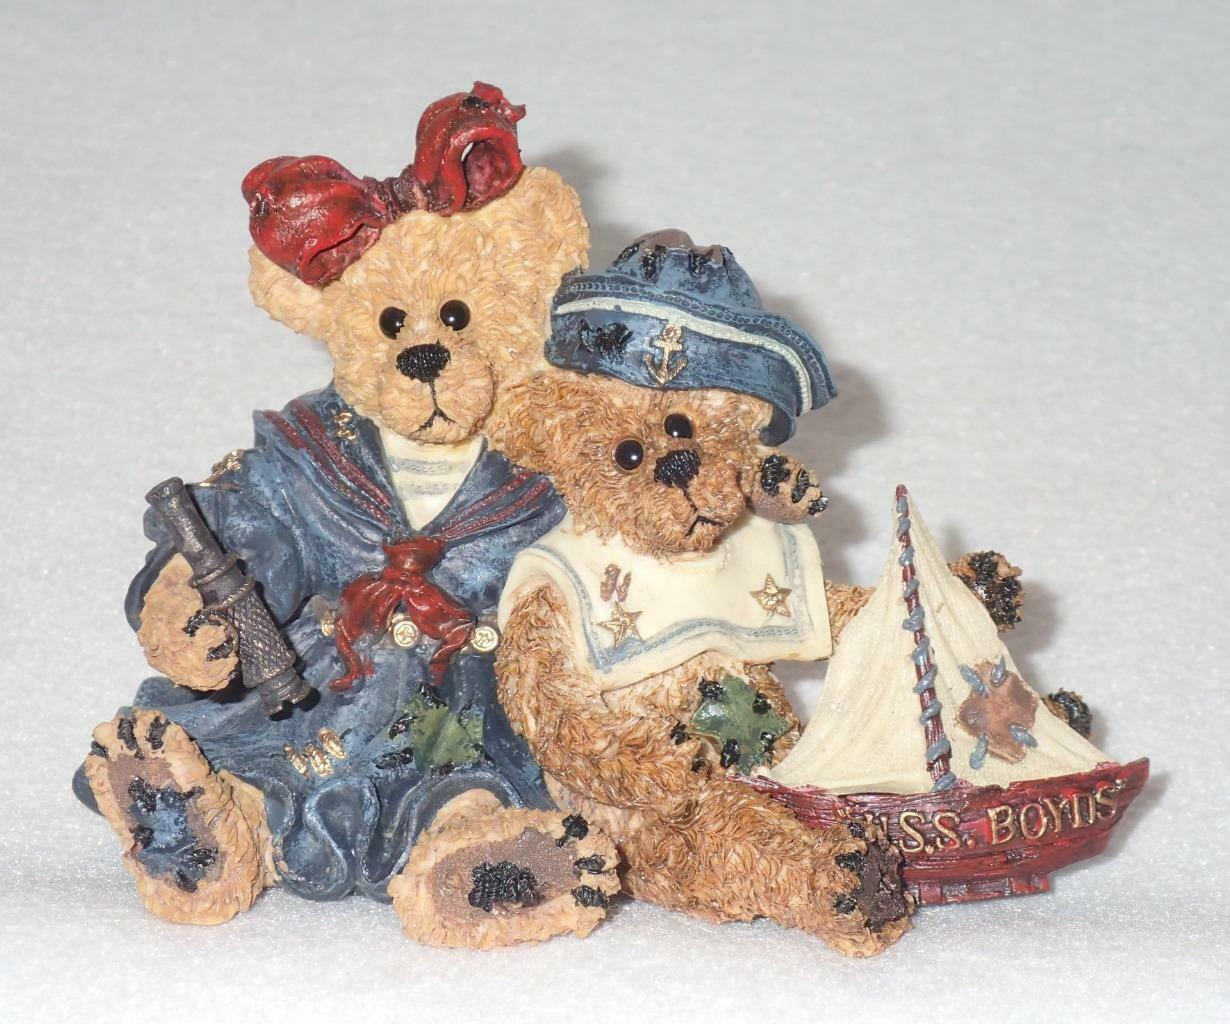 Boyd Bearstone Resin Bears 1998 Elvira and Chauncey Fitzbruin Shipmate Figurine